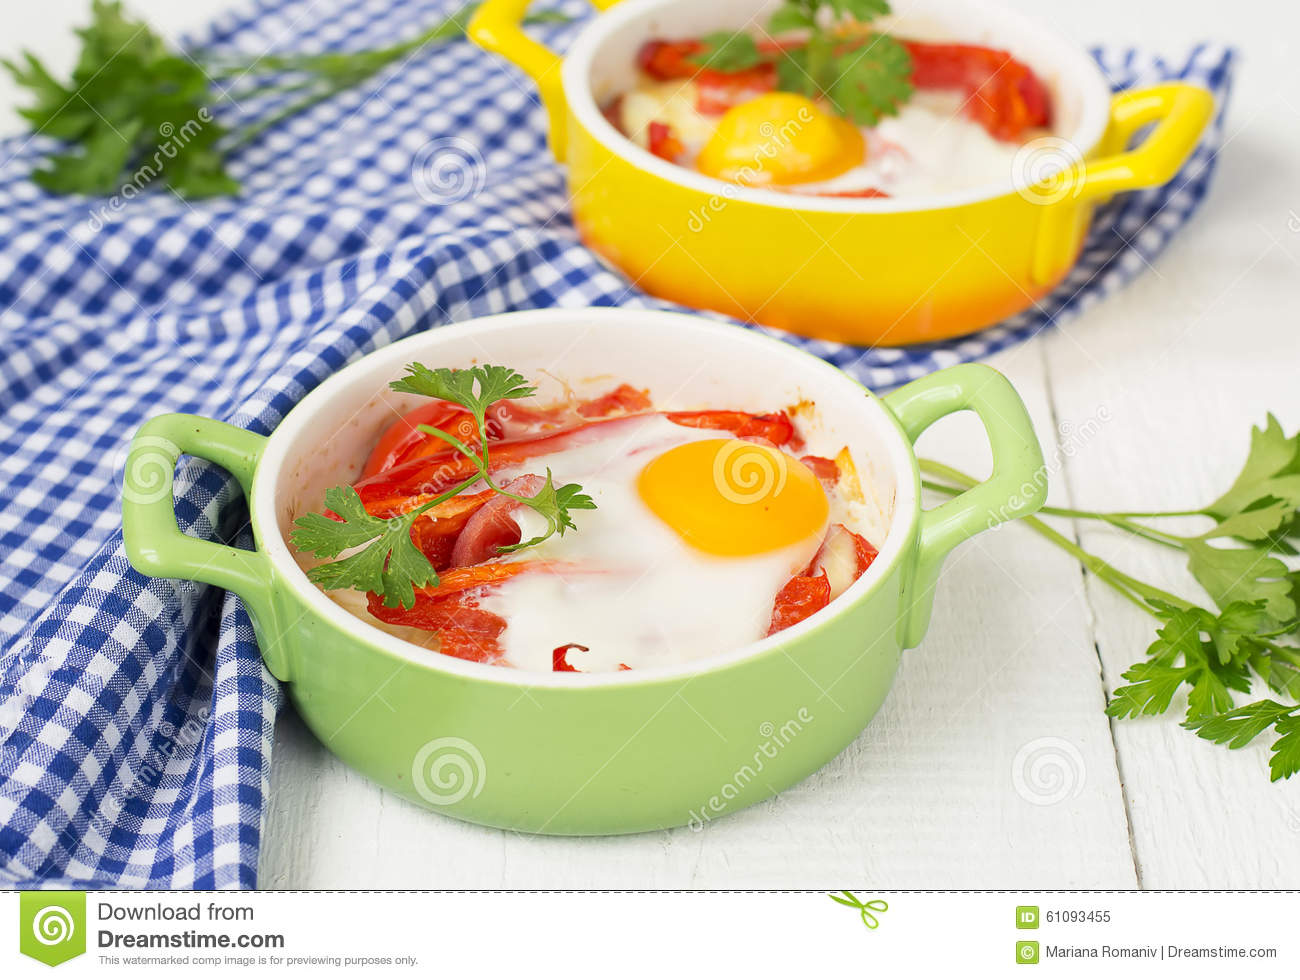 Baked Eggs With Tomatoes & Peppers Recipe — Dishmaps